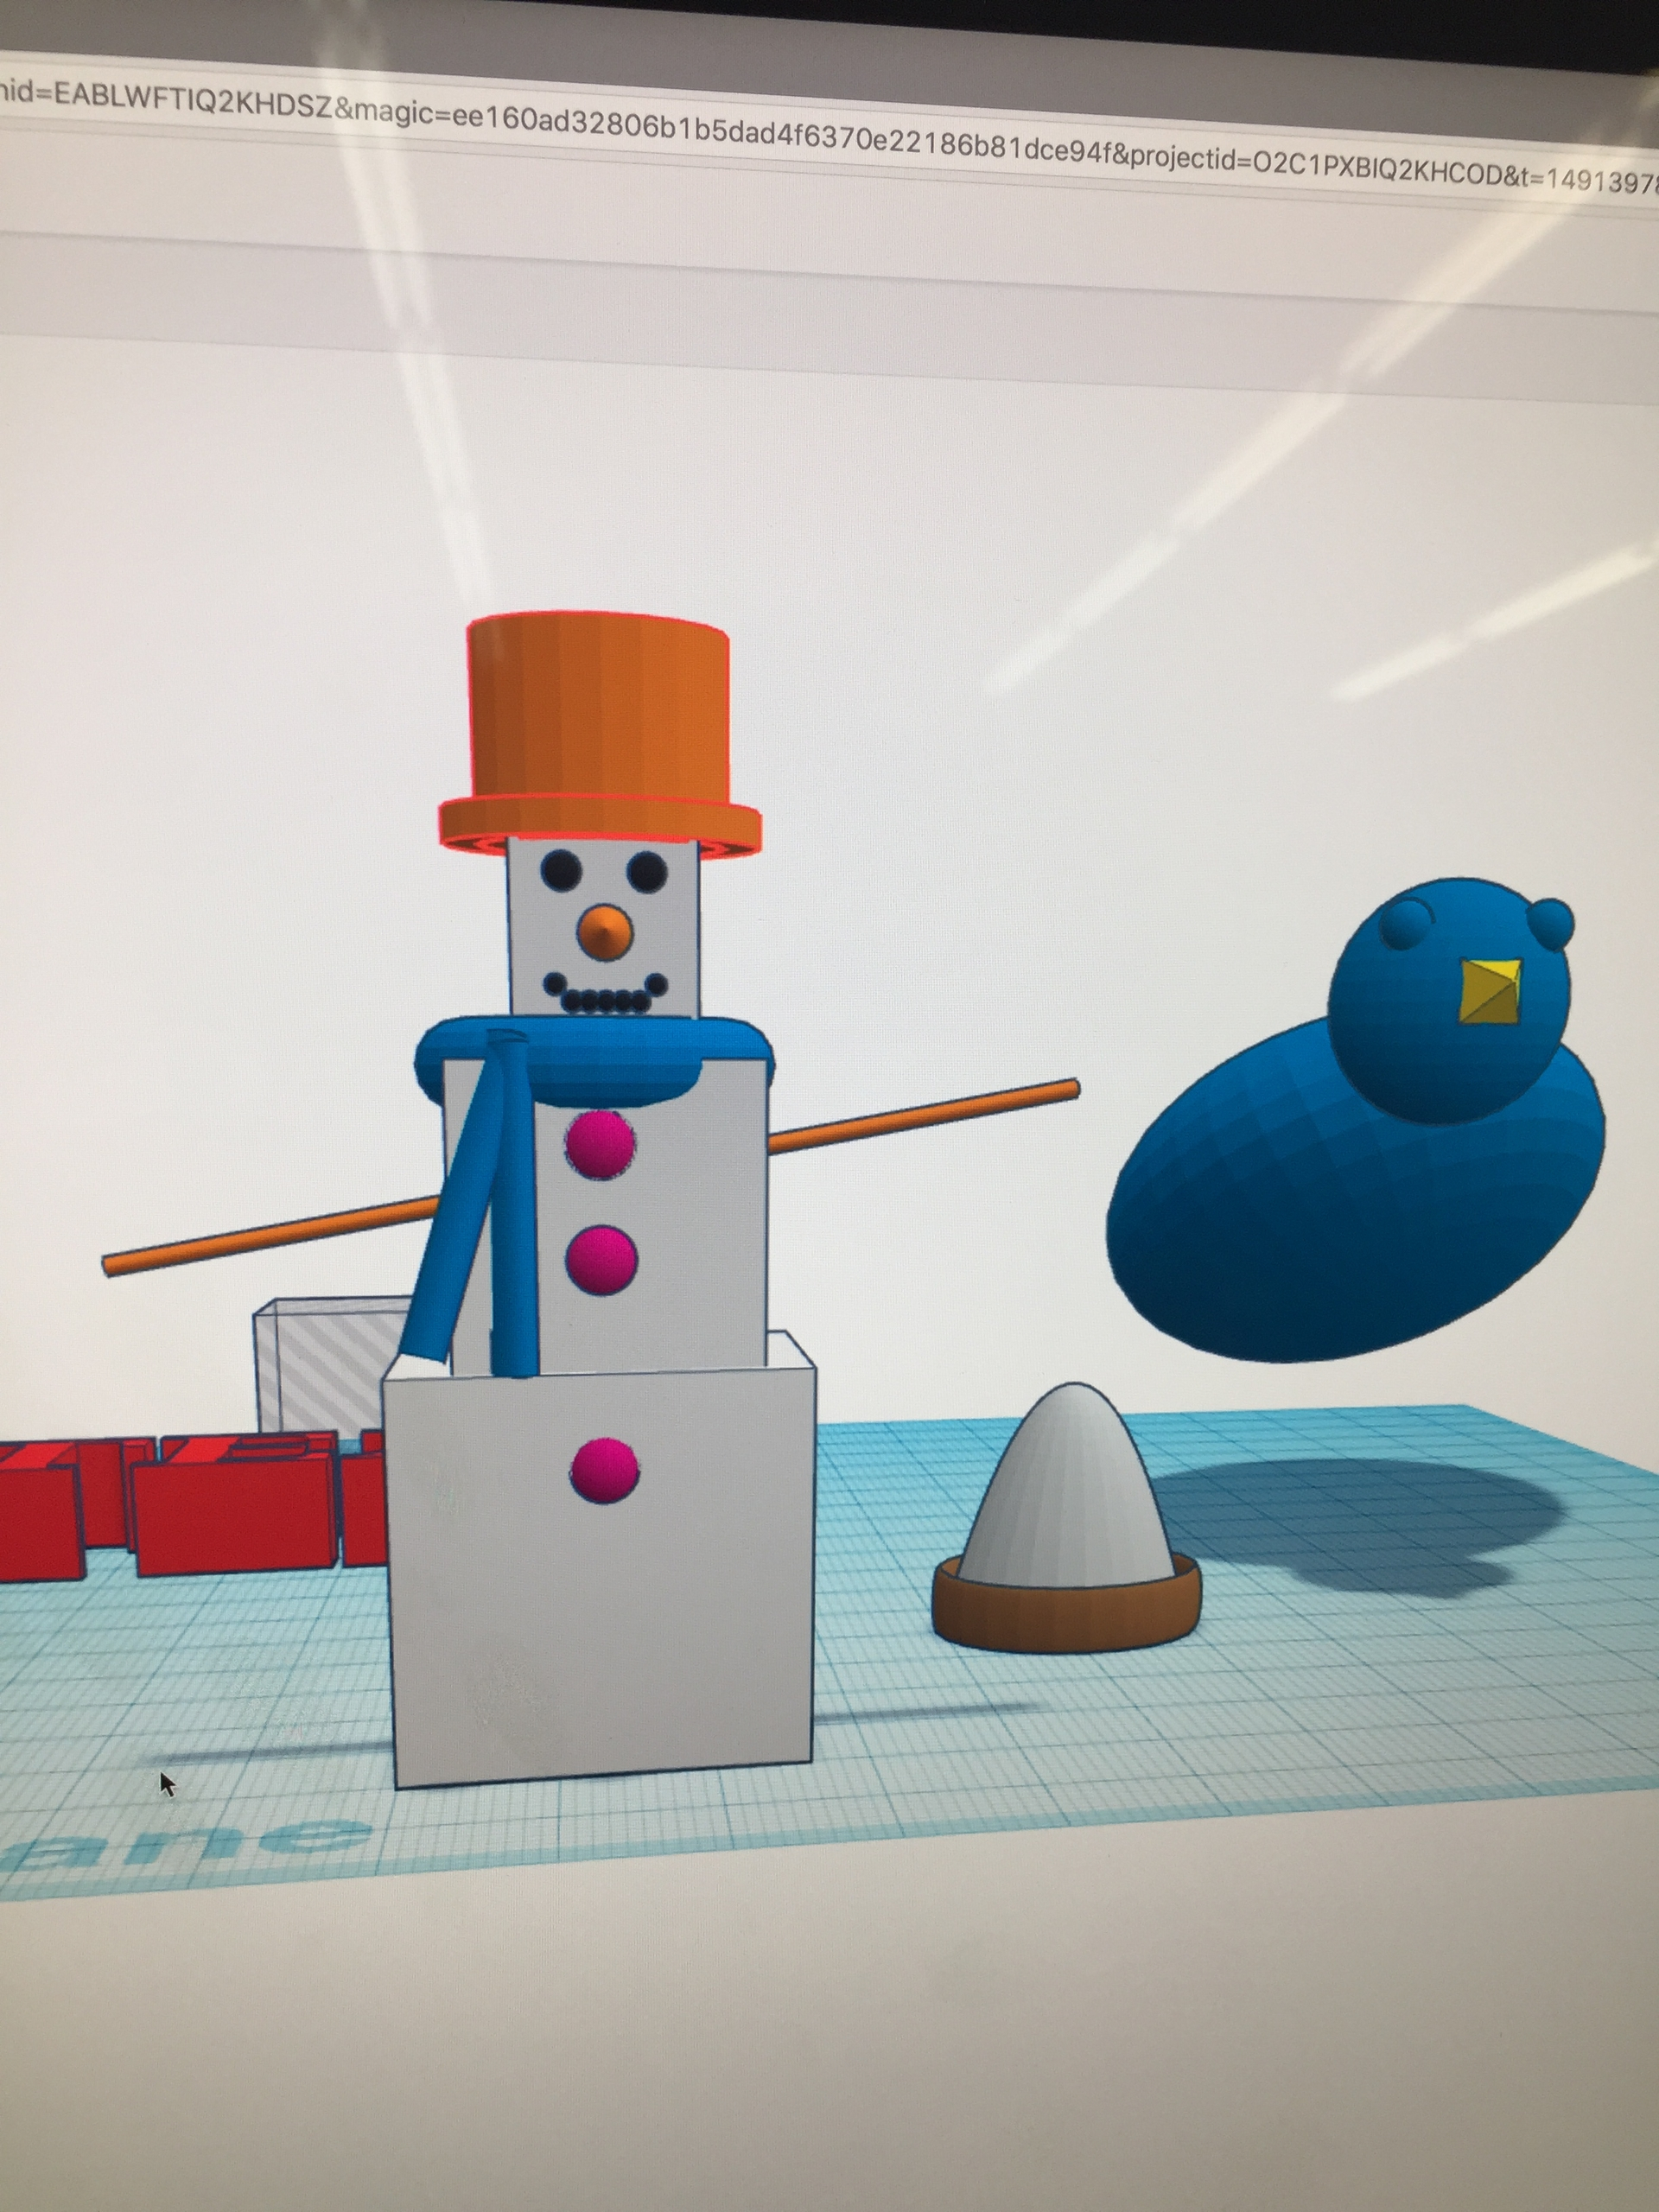 Tinkercad time! Bad weather com - slabra15m | ello